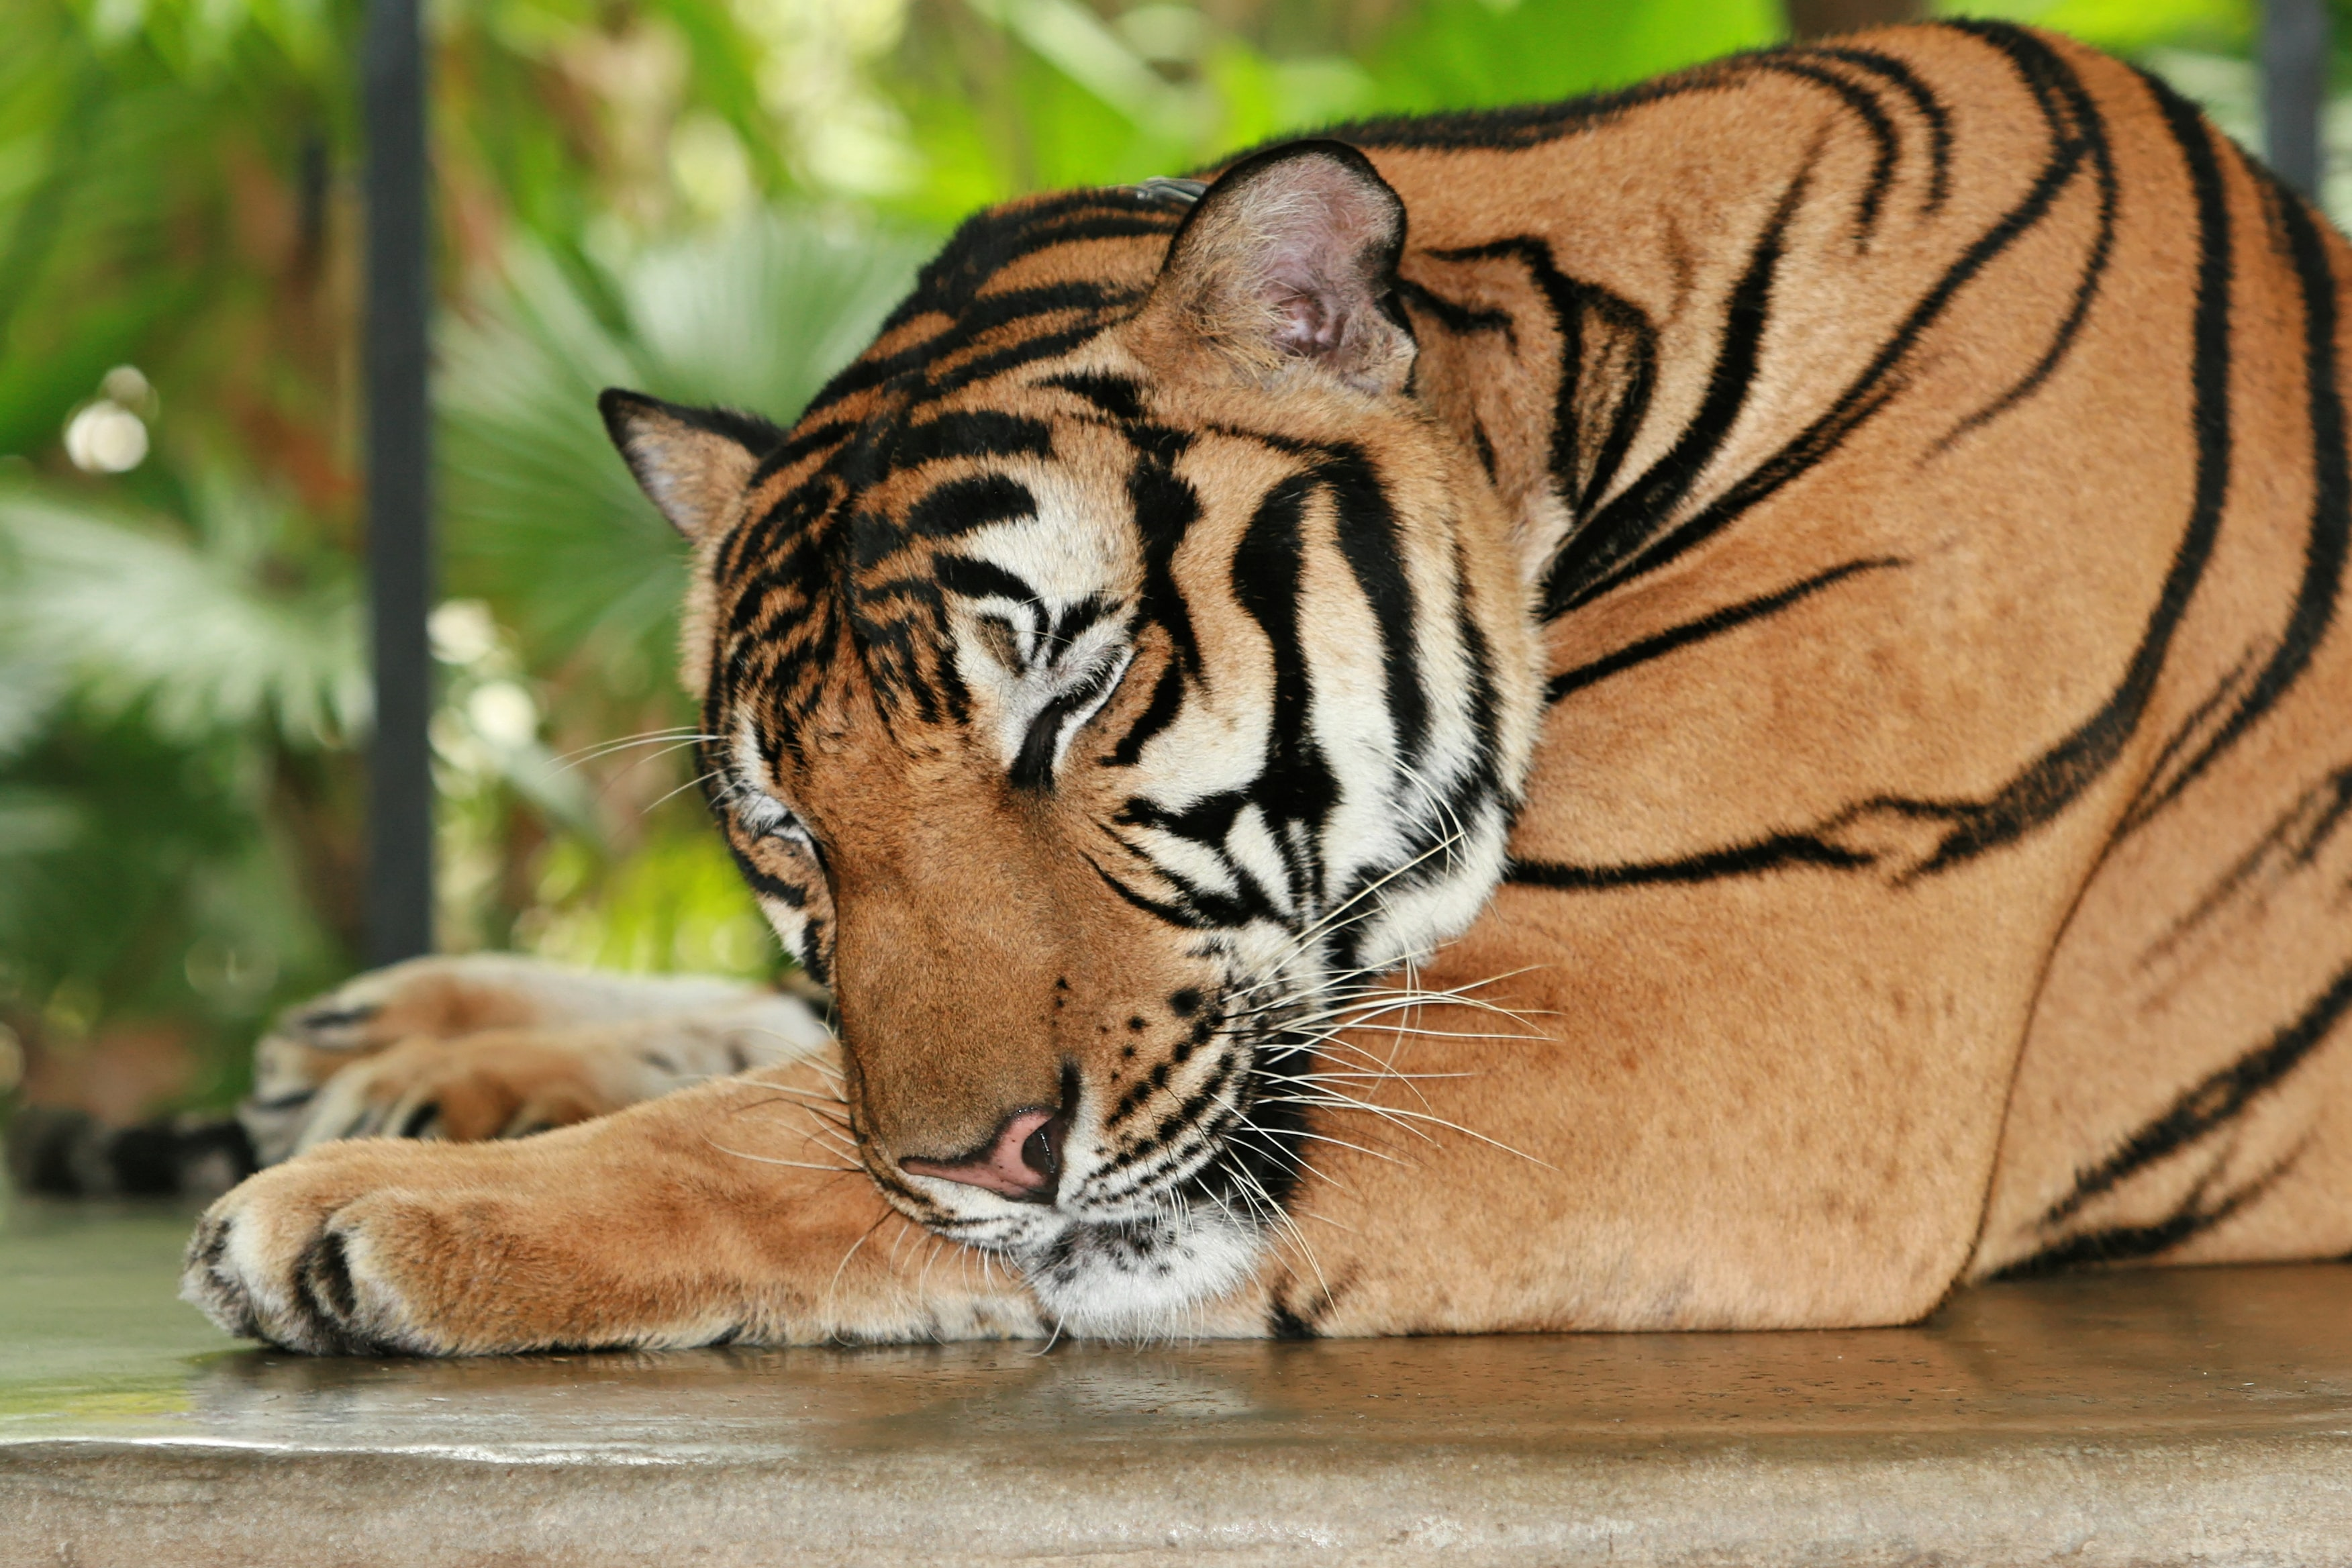 Close-up of a tiger sleeping with its head resting on its paw